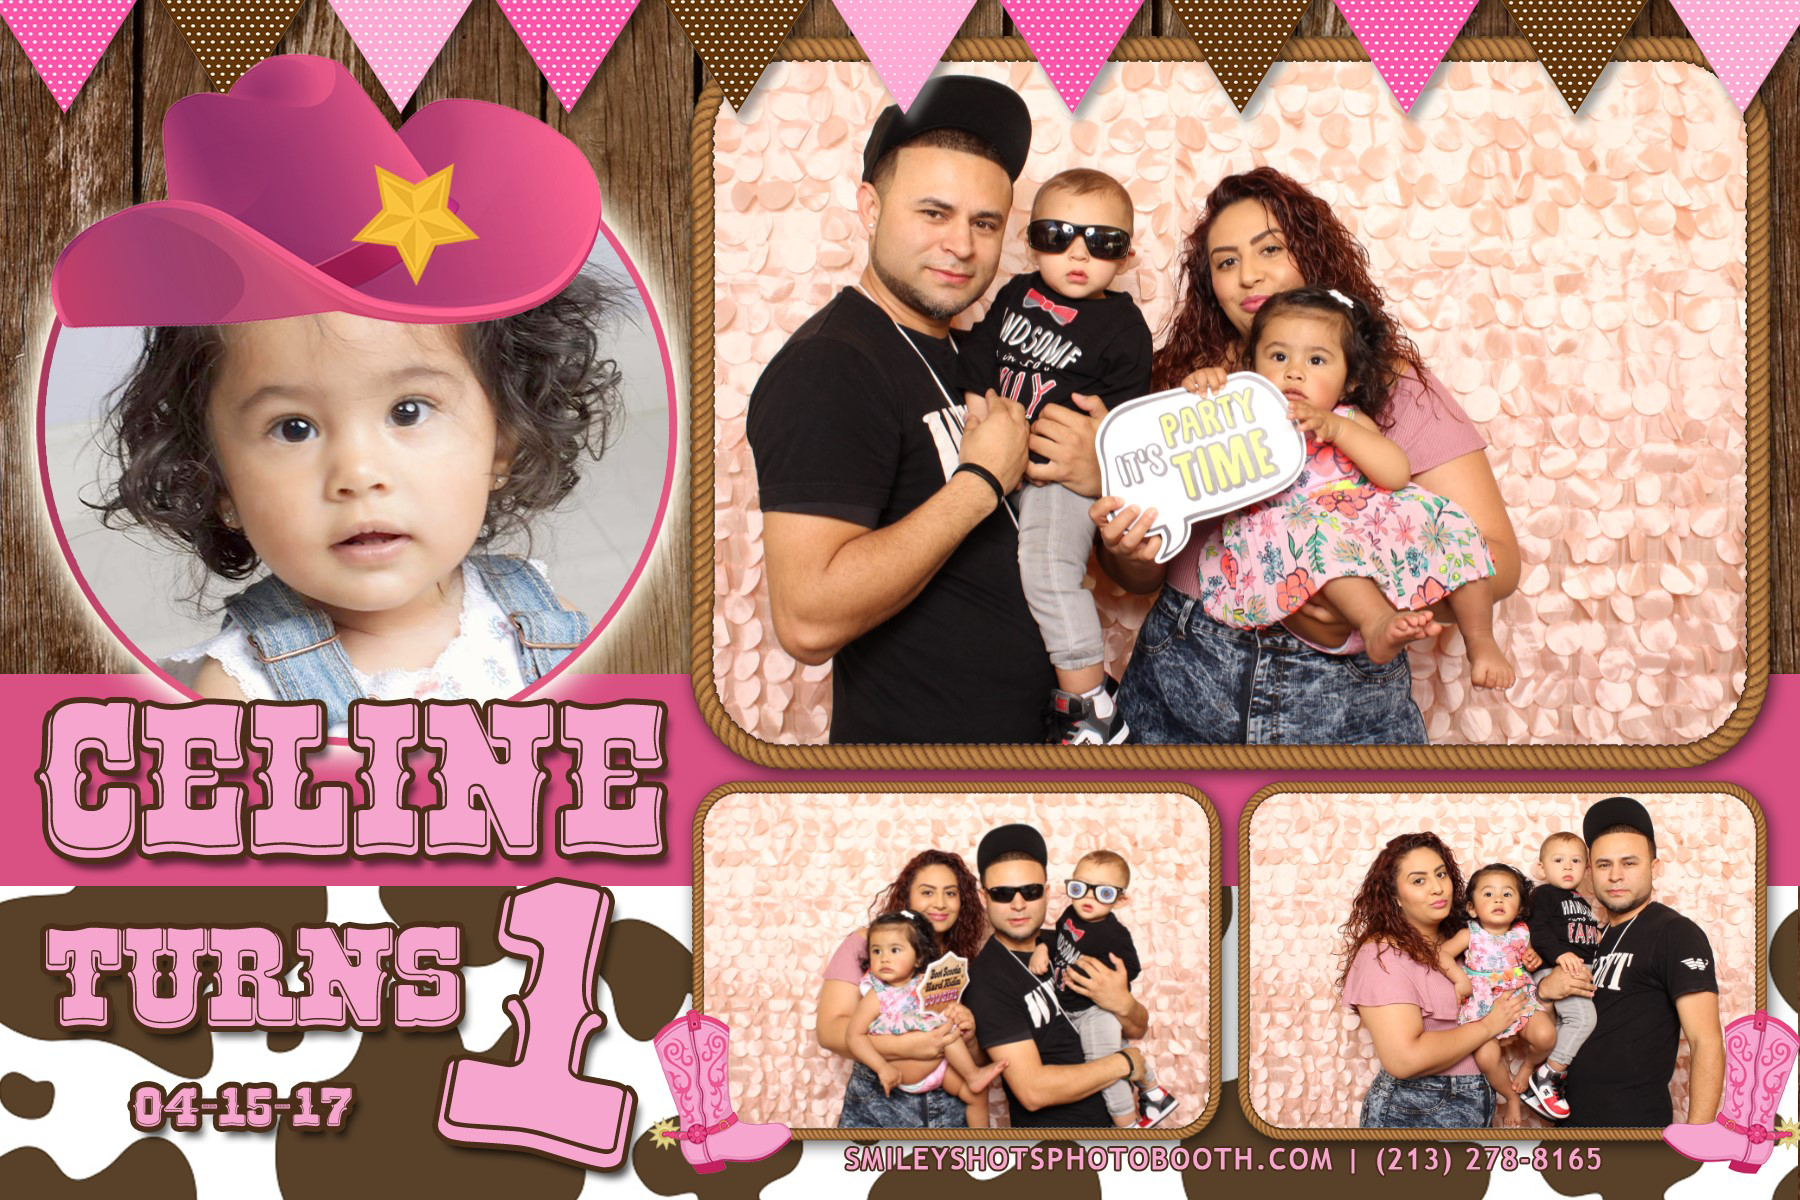 Celine turns 1 Smiley Shots Photo Booth Photobooth (18).png